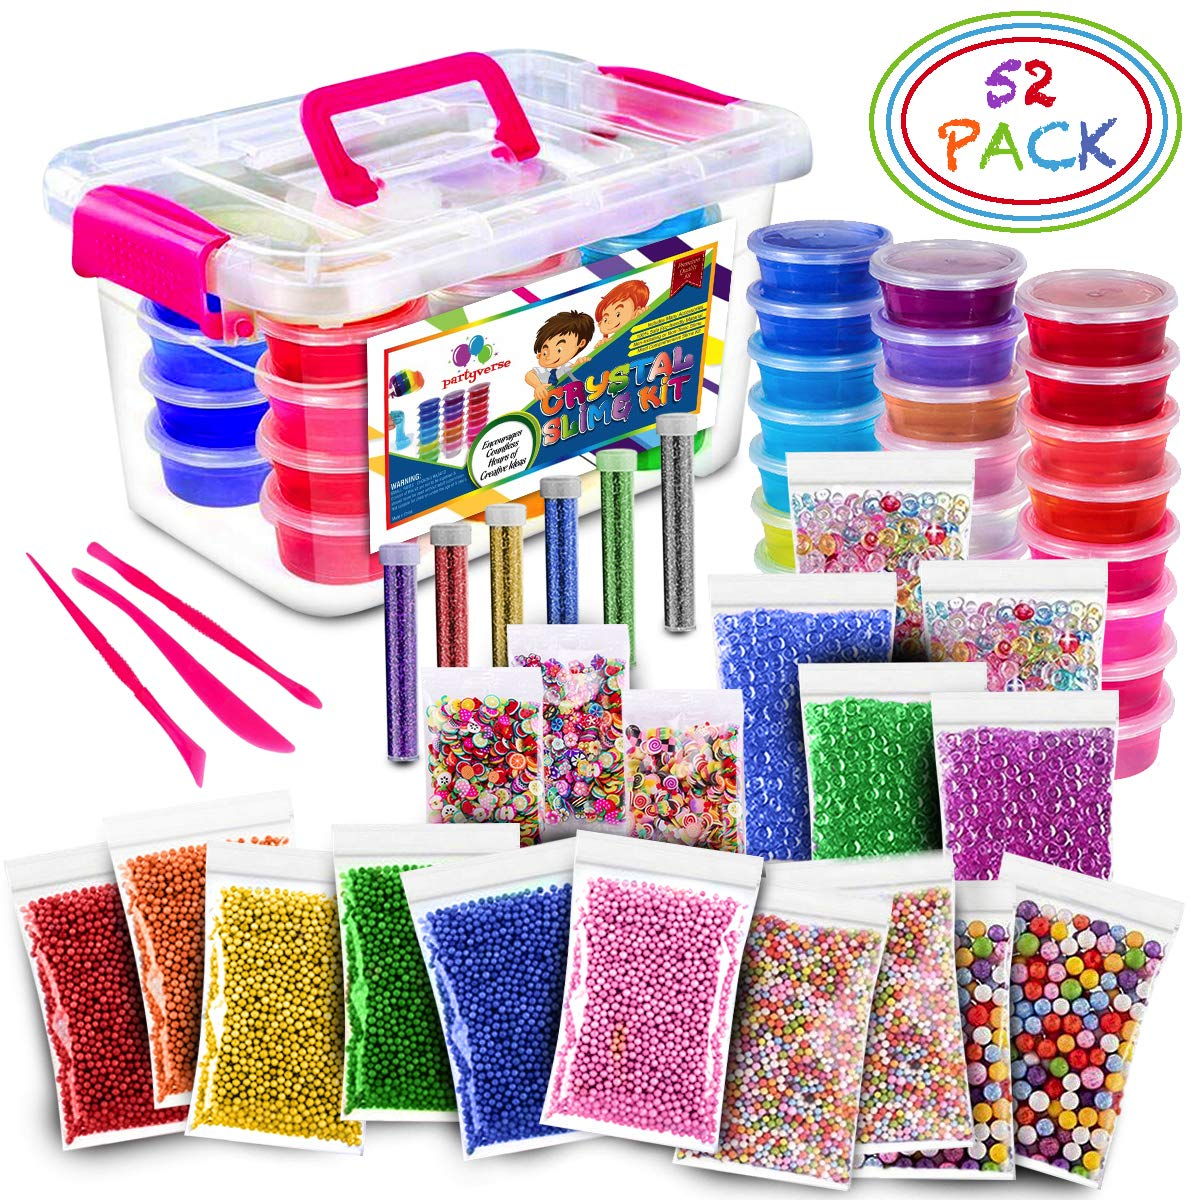 Ultimate Slime Kit - 24 Color Crystal Clear Fluffy DIY Starter Slime Supplies for Girls and Boys With Loads of Crunchy Accessories